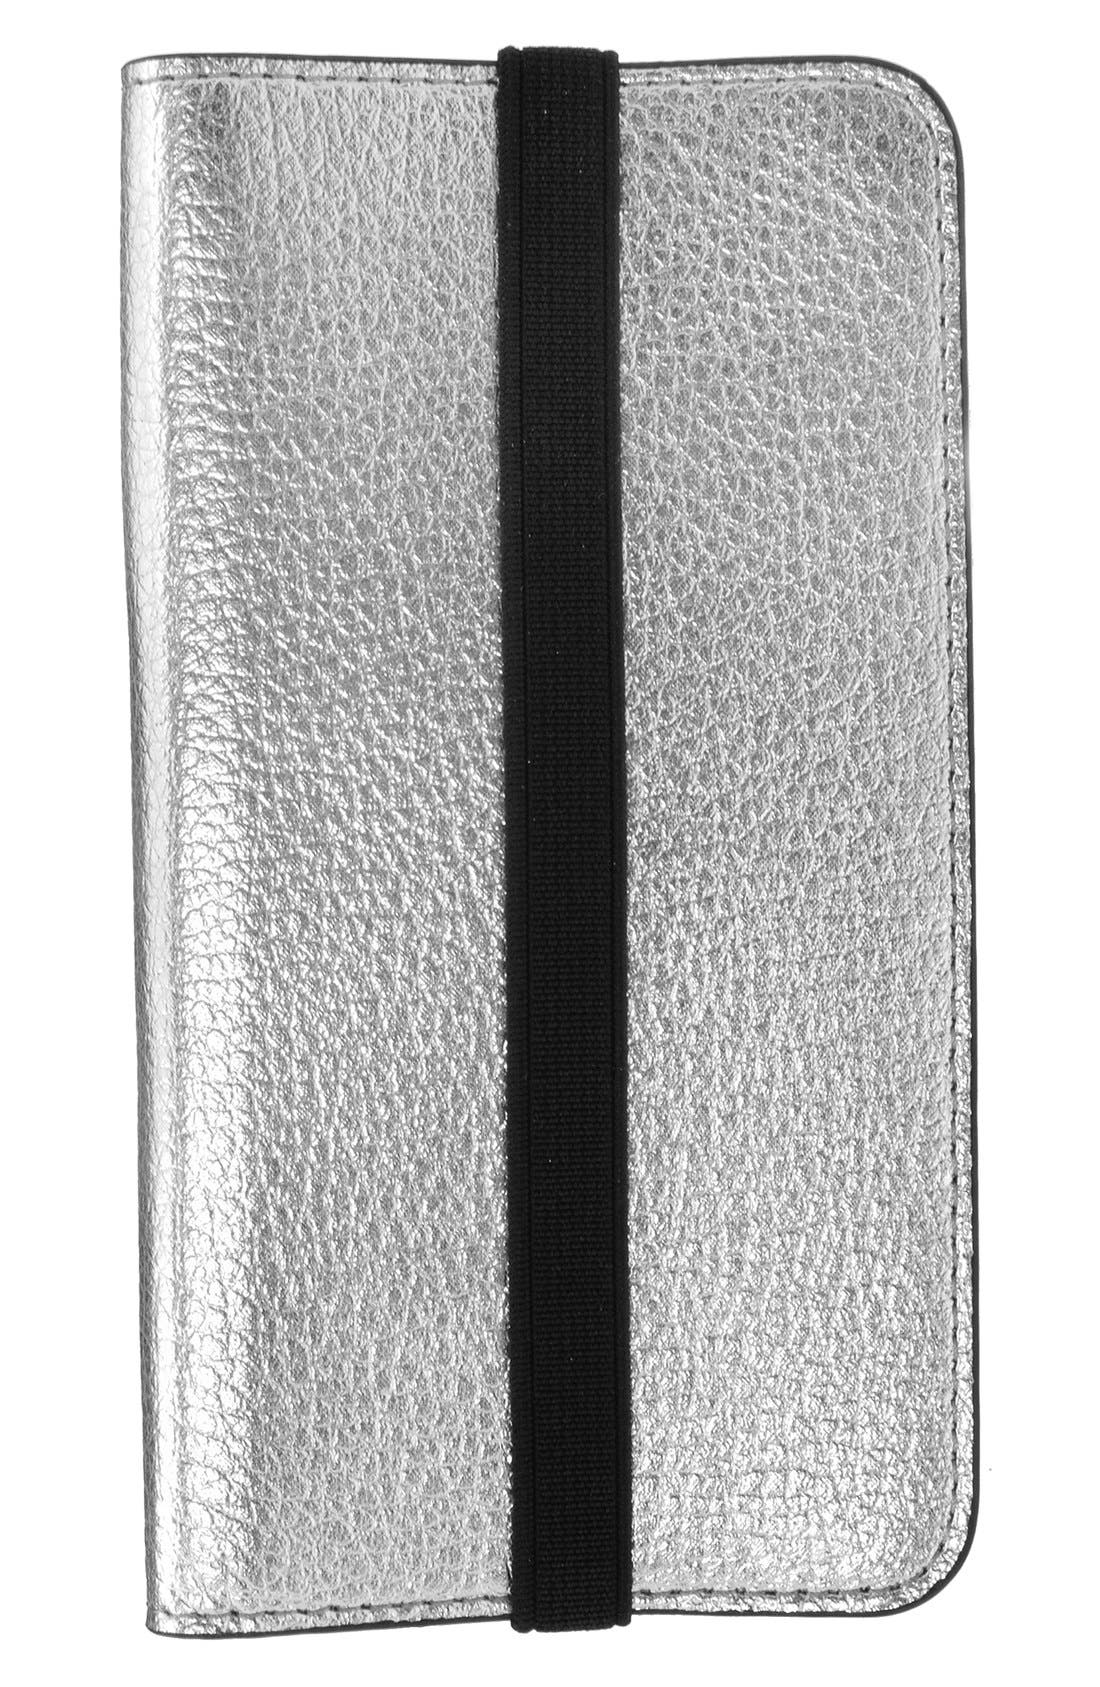 Mobileluxe iPhone 6/6s Metallic Leather Wallet Case